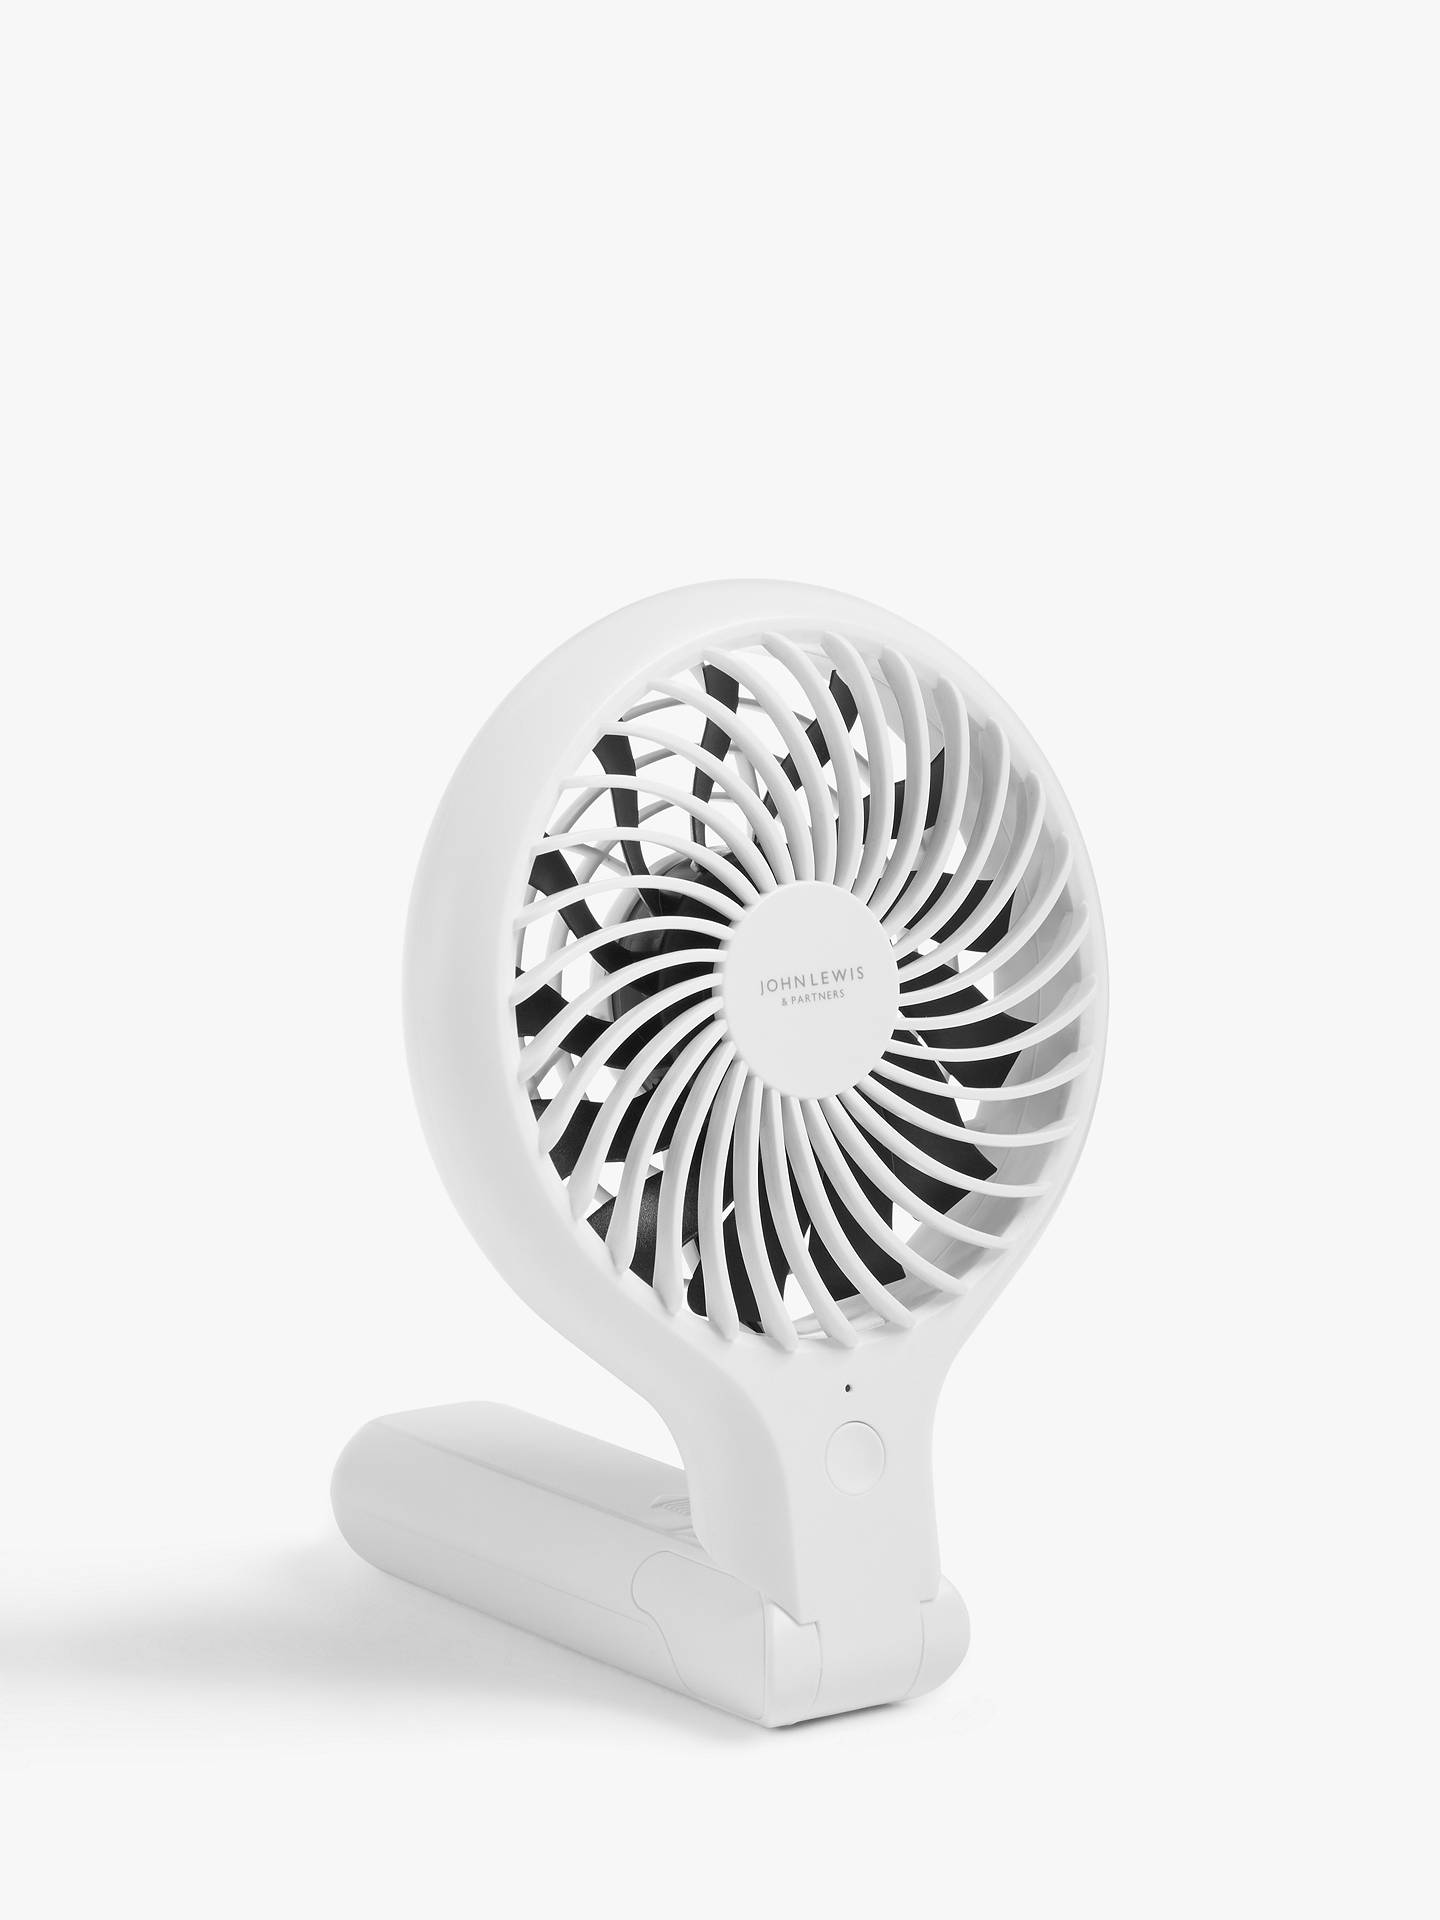 Buy John Lewis & Partners Handheld and Foldable Desk Fan, 4 inch Online at johnlewis.com